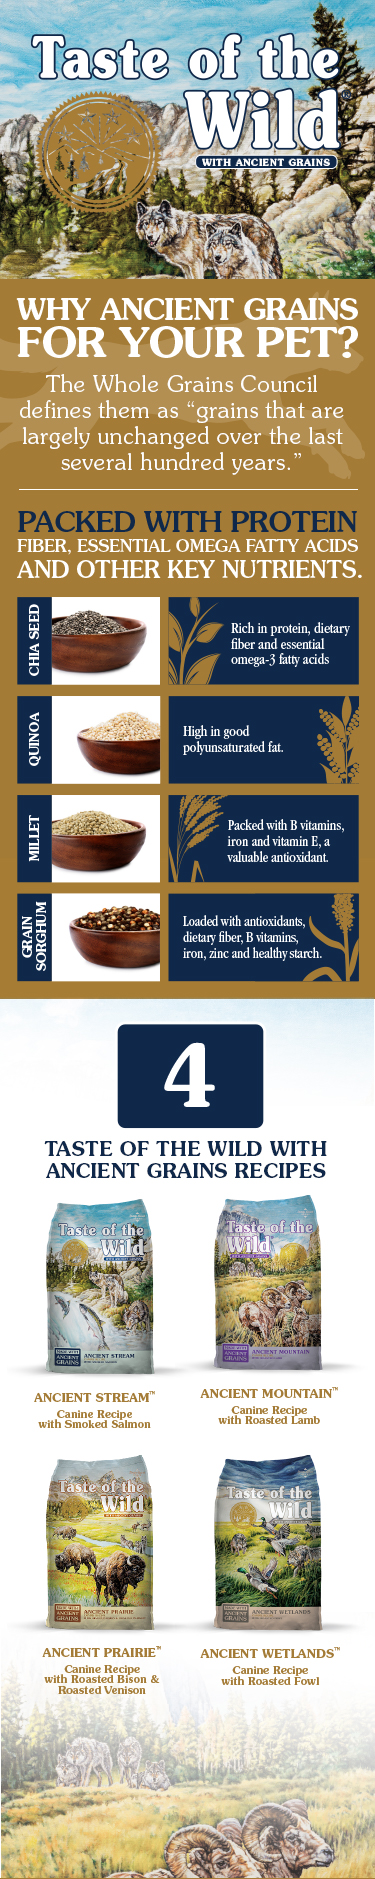 Ancient Grains Infographic | Taste of the Wild